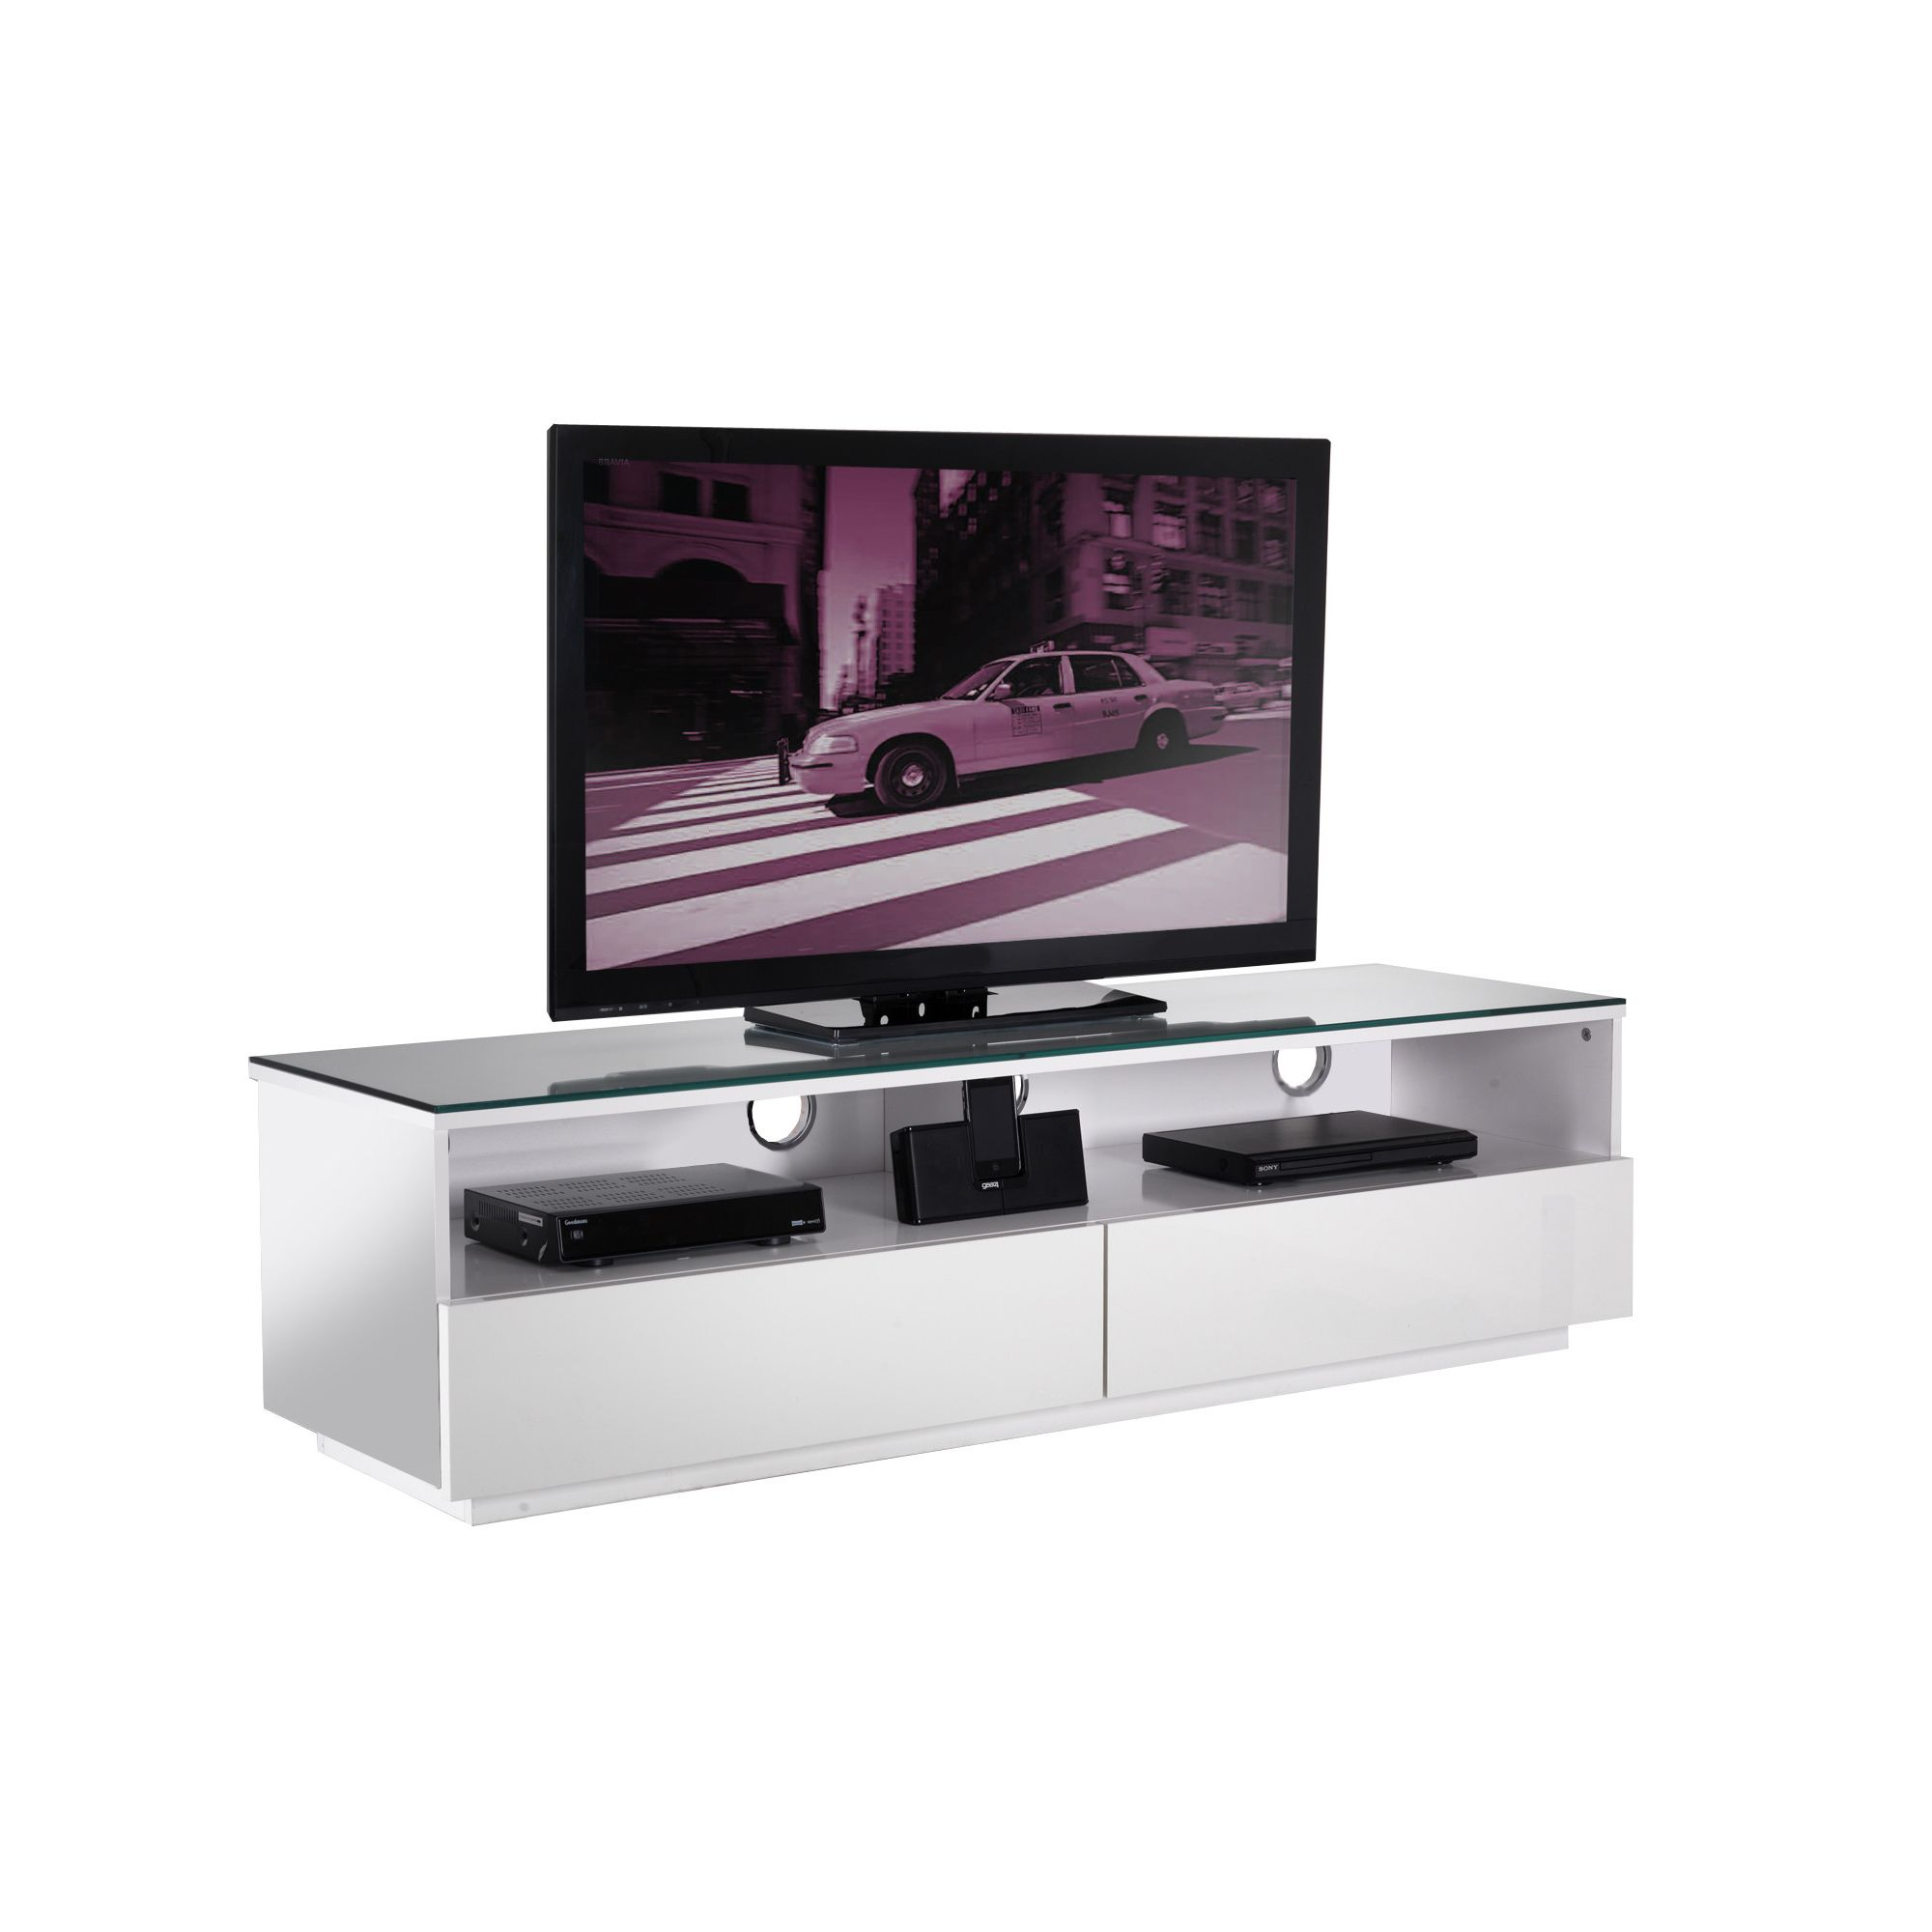 UK-CF City Scape New York 60'' TV Stand - White at Tesco Direct